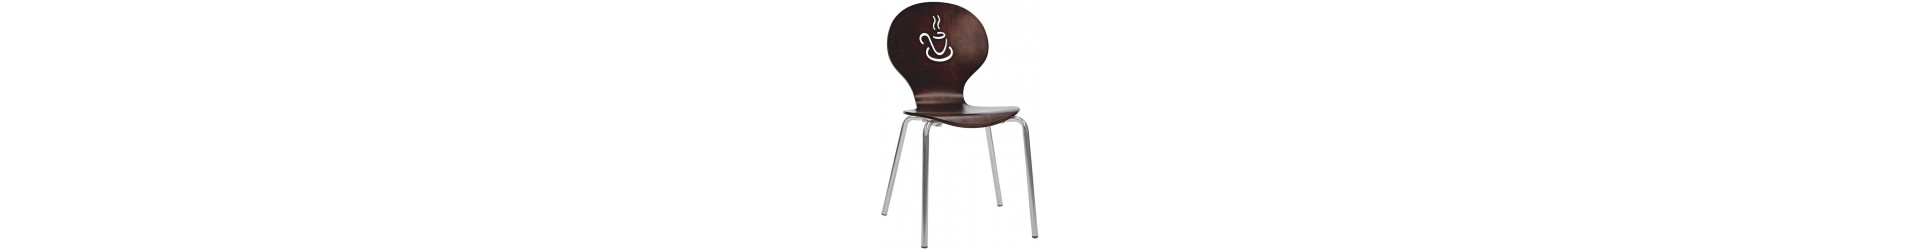 Looking for a professional Chair for your establishment? This is the place.